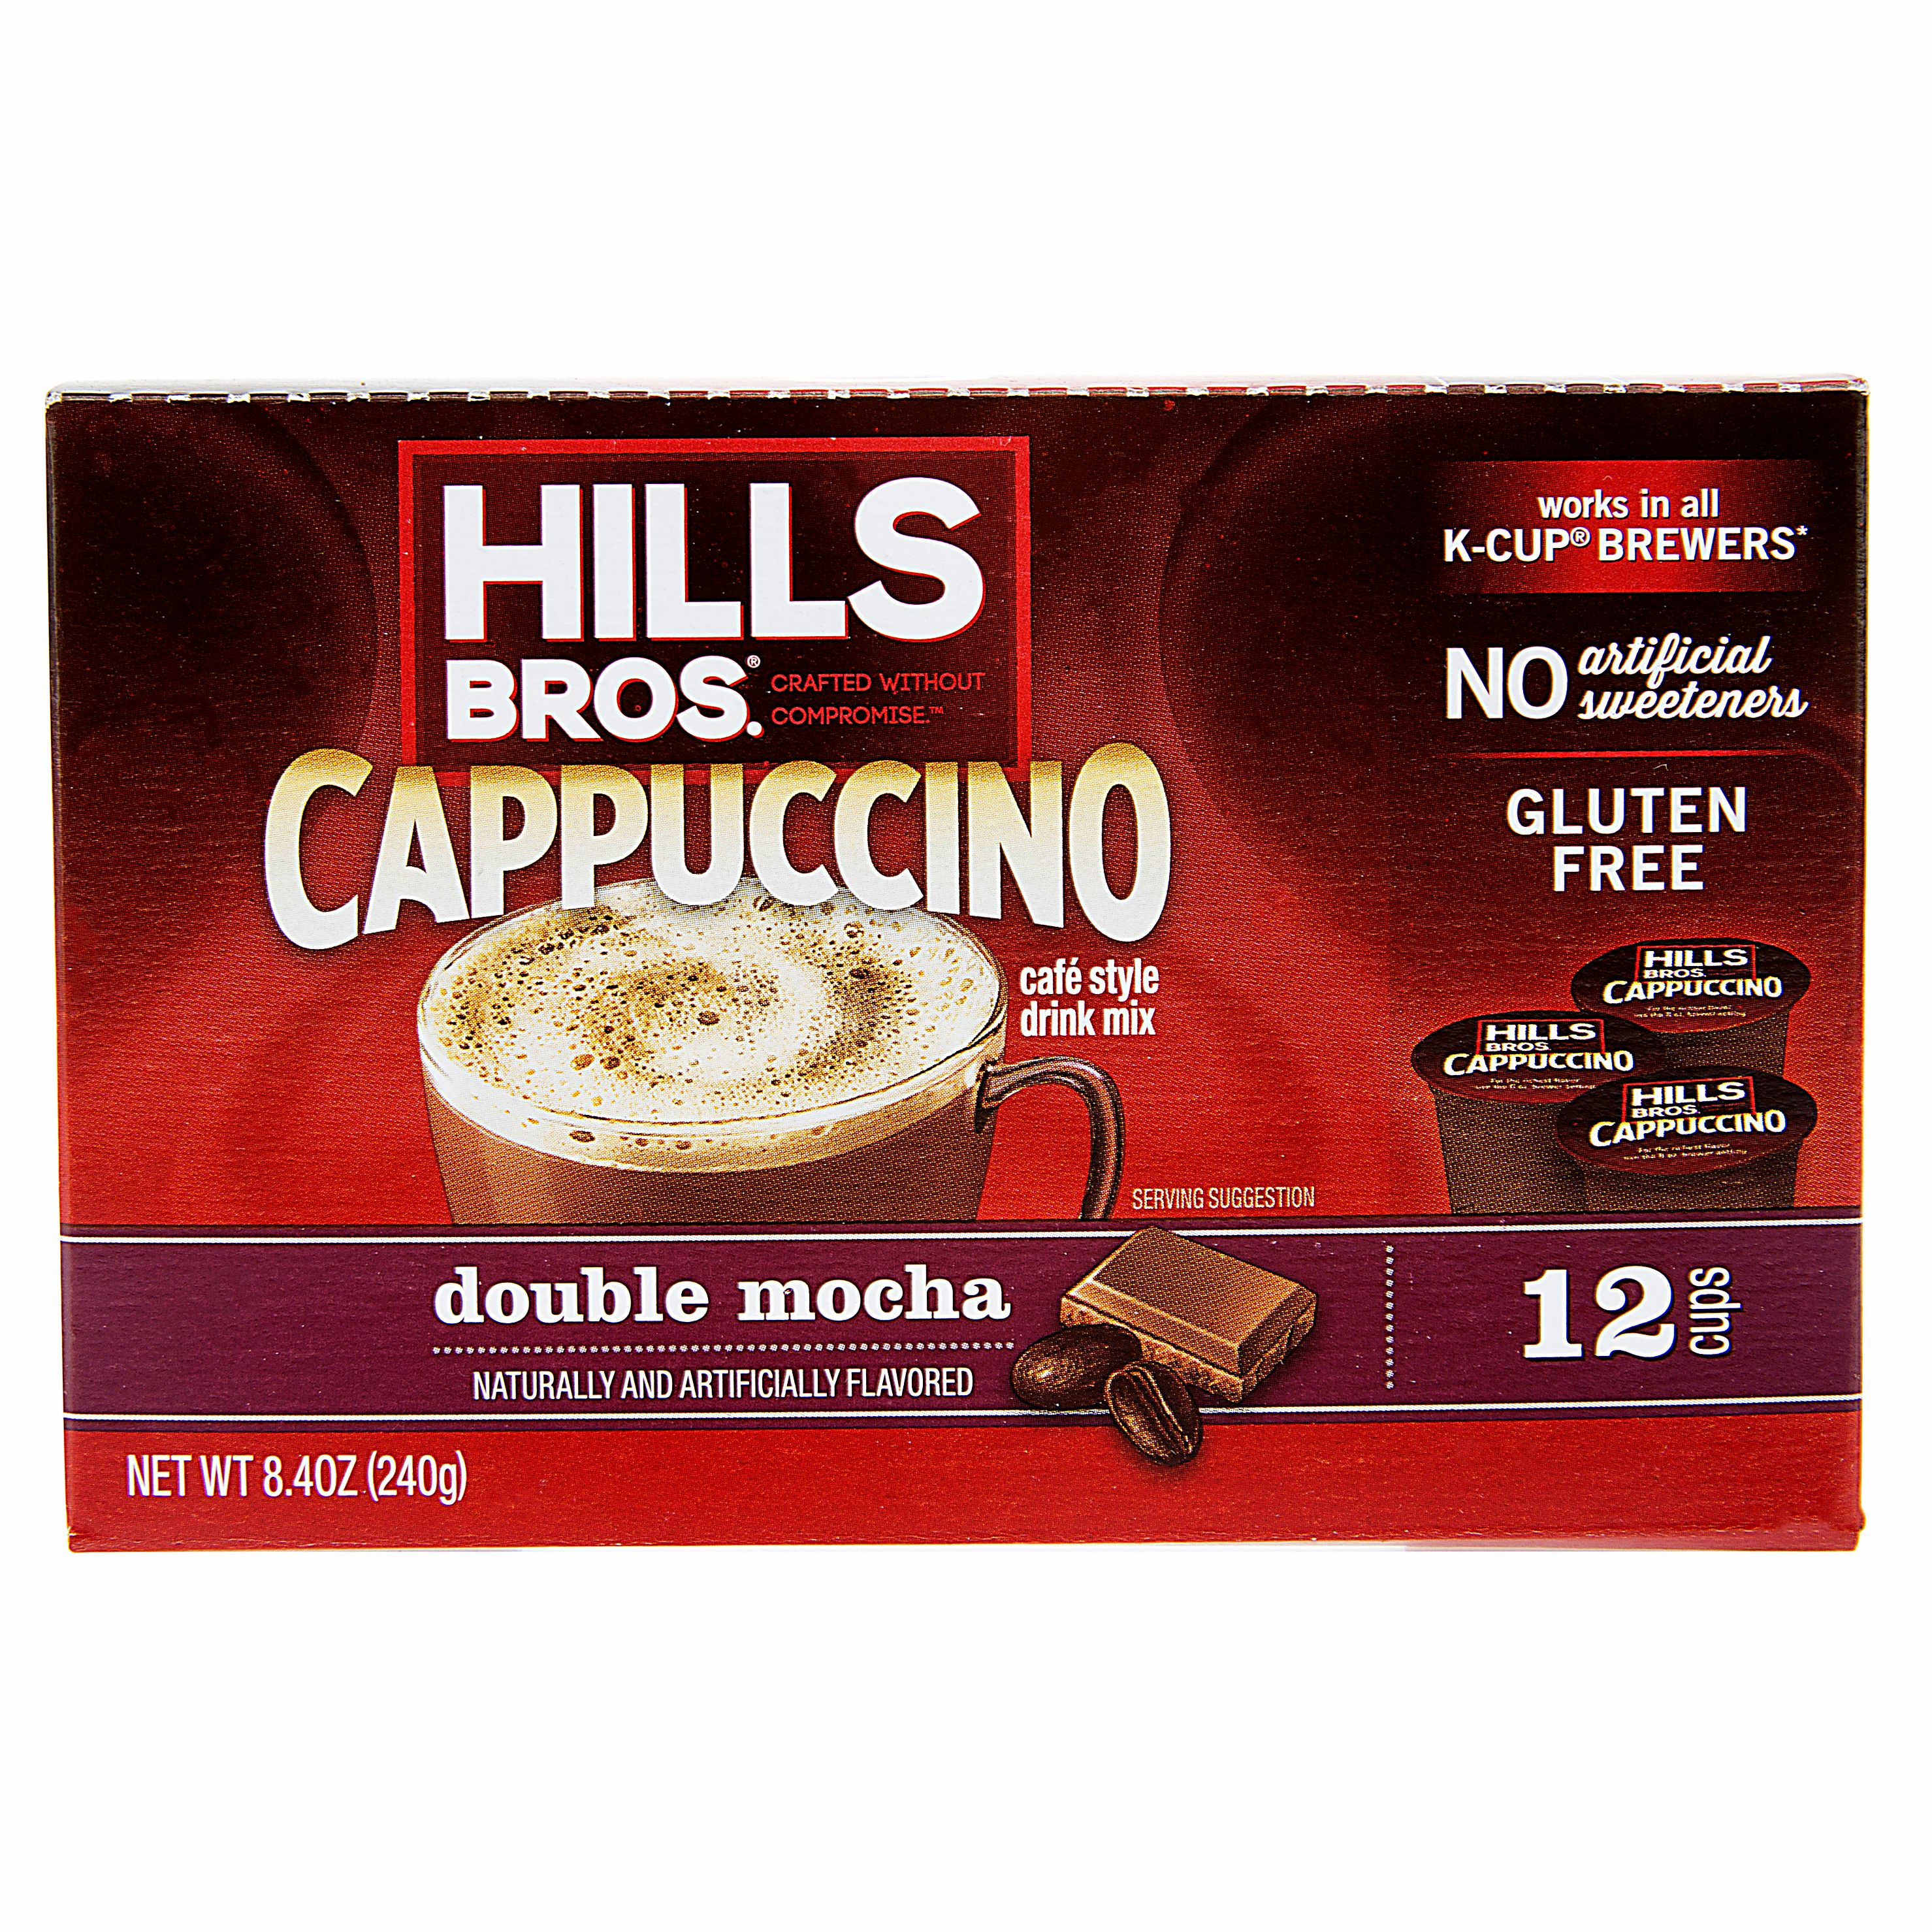 Hills Bros. Double Mocha Cappuccino Single Serve Cups, 12 Count Box